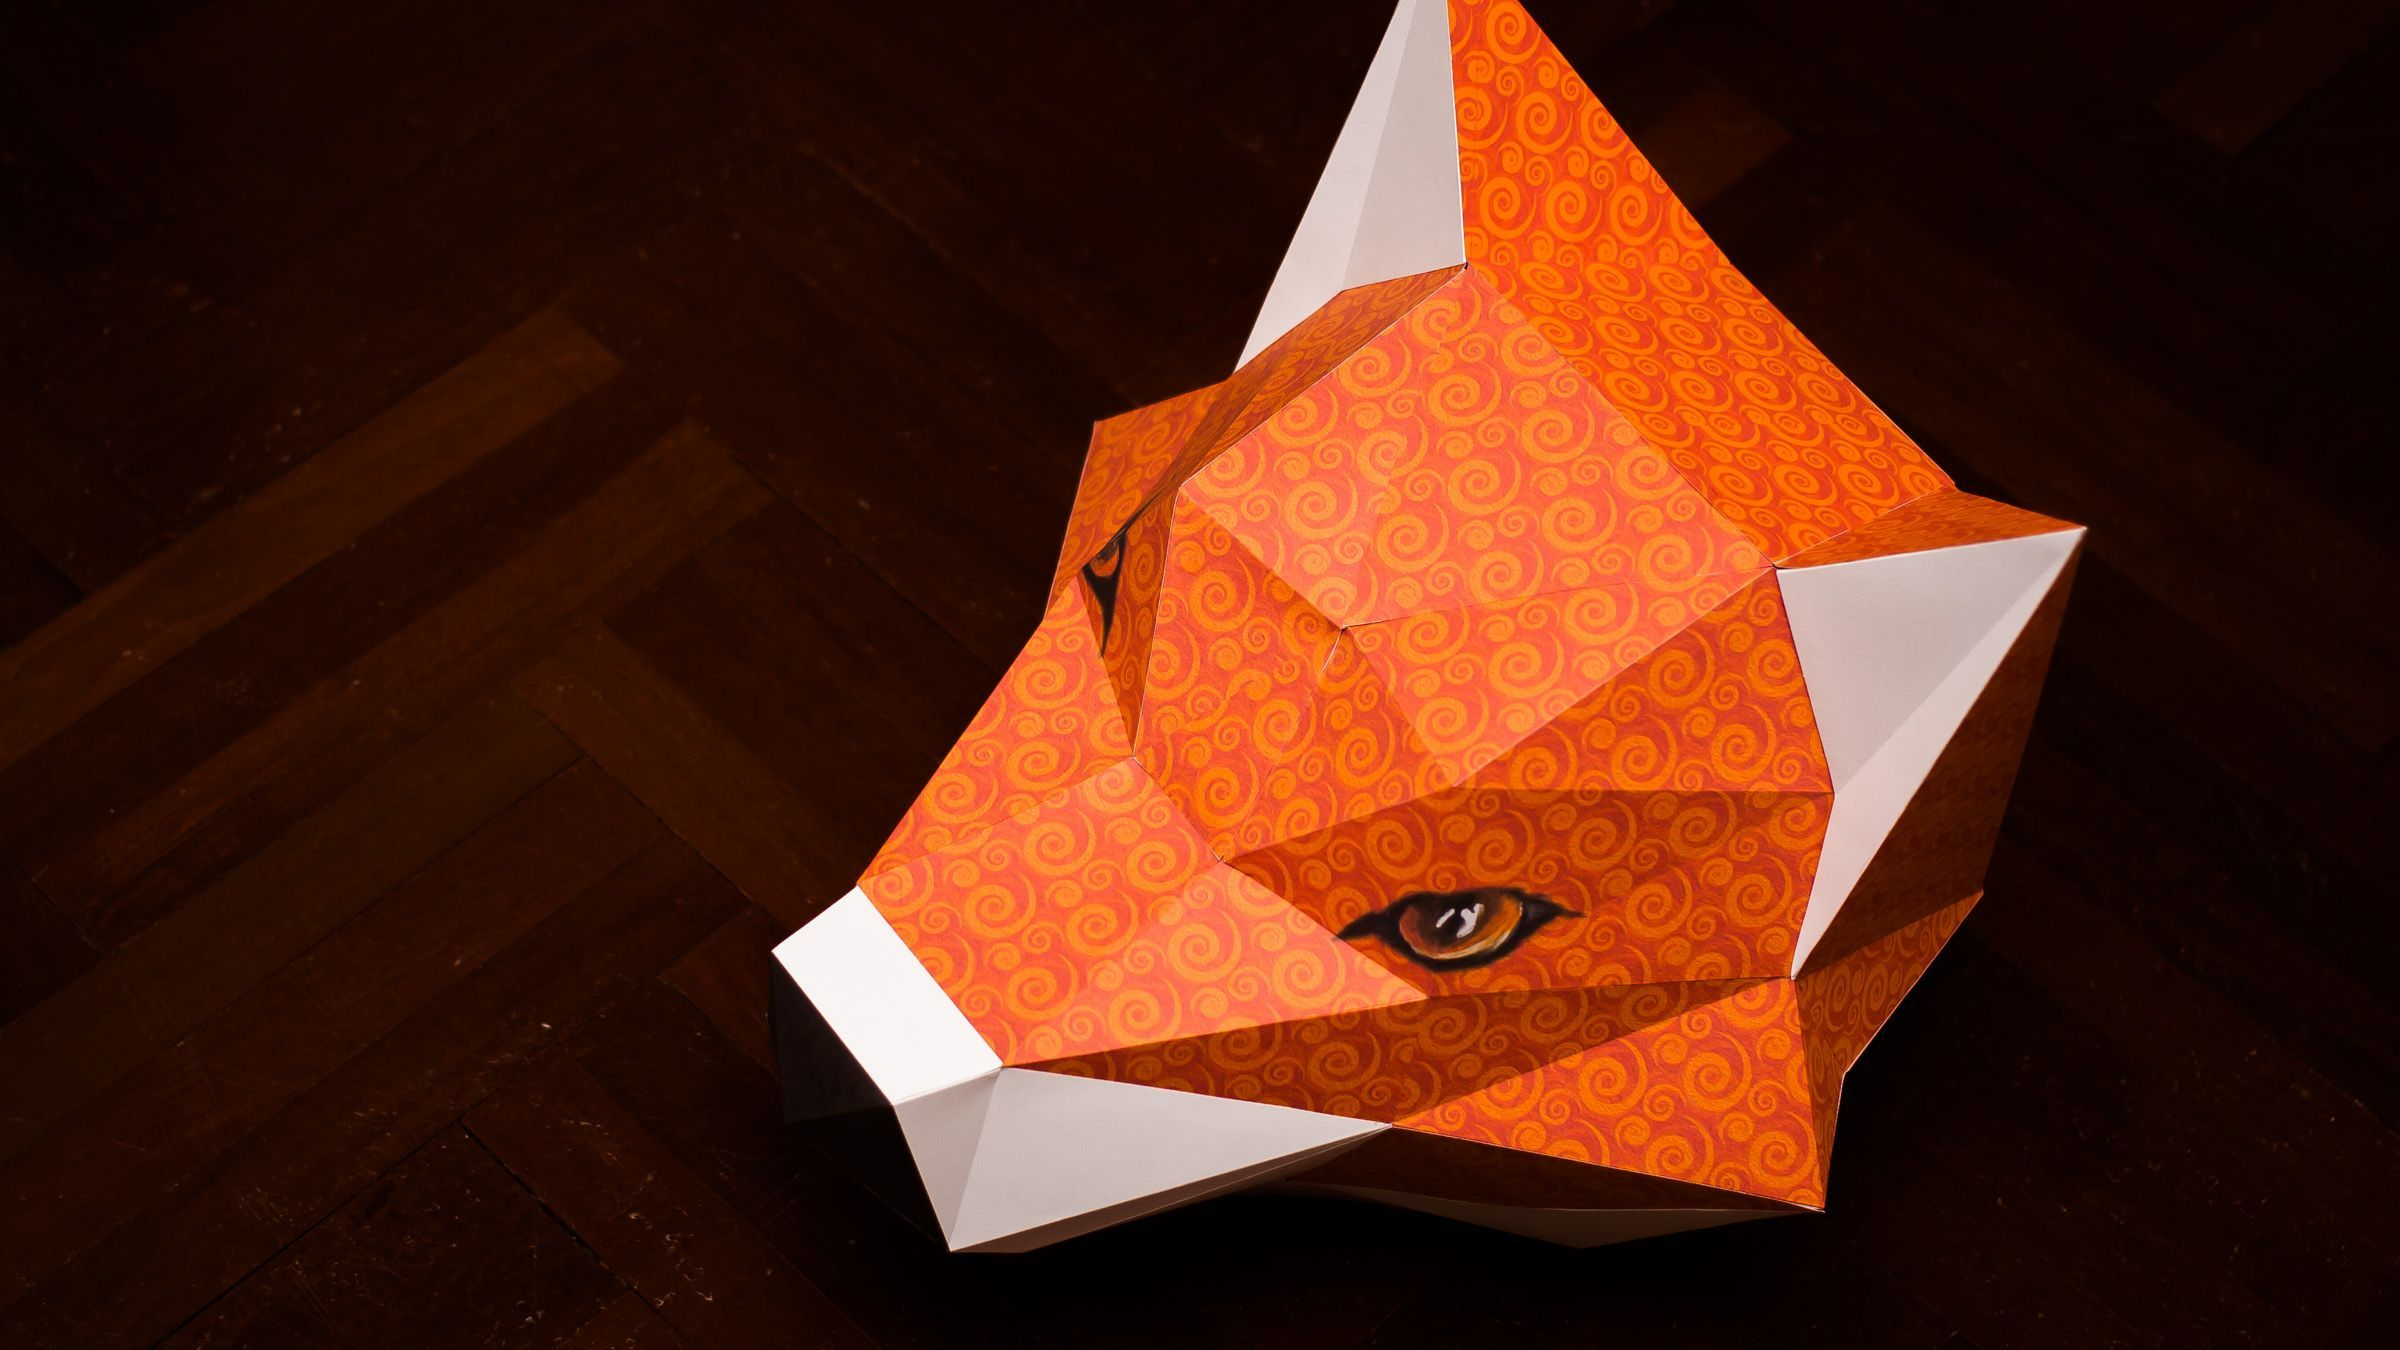 3d paper model instruction paper model instruction illustration of teaching a paper toy figure 3 how to make a fox head mask paper head model fox jeuxipadfo Image collections